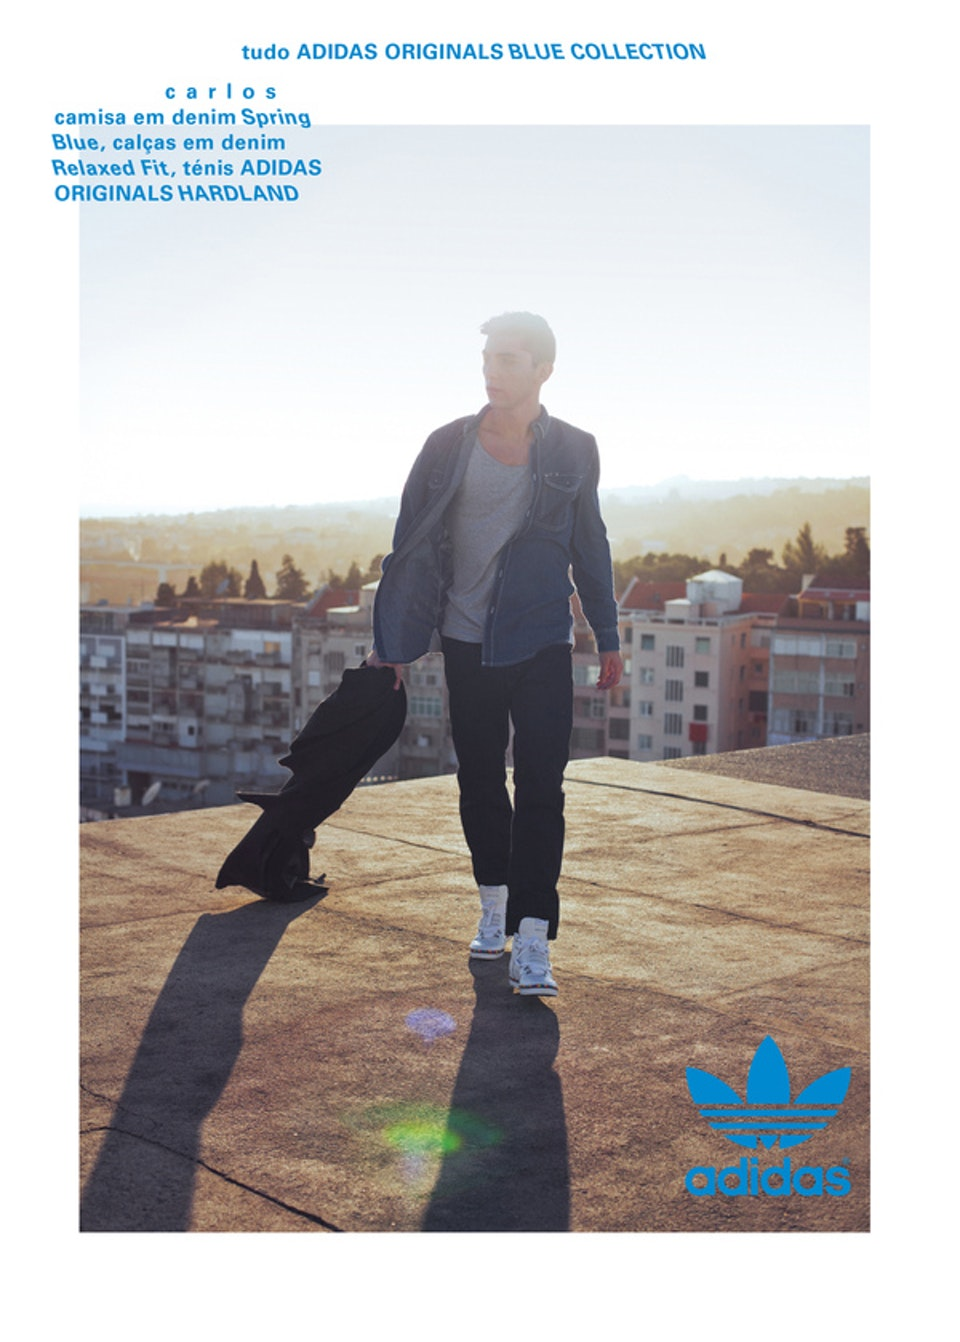 Adidas - Originals Blue Collection for Park Mag 0b421dc3f38b09f4e57ab13ade16e6ec